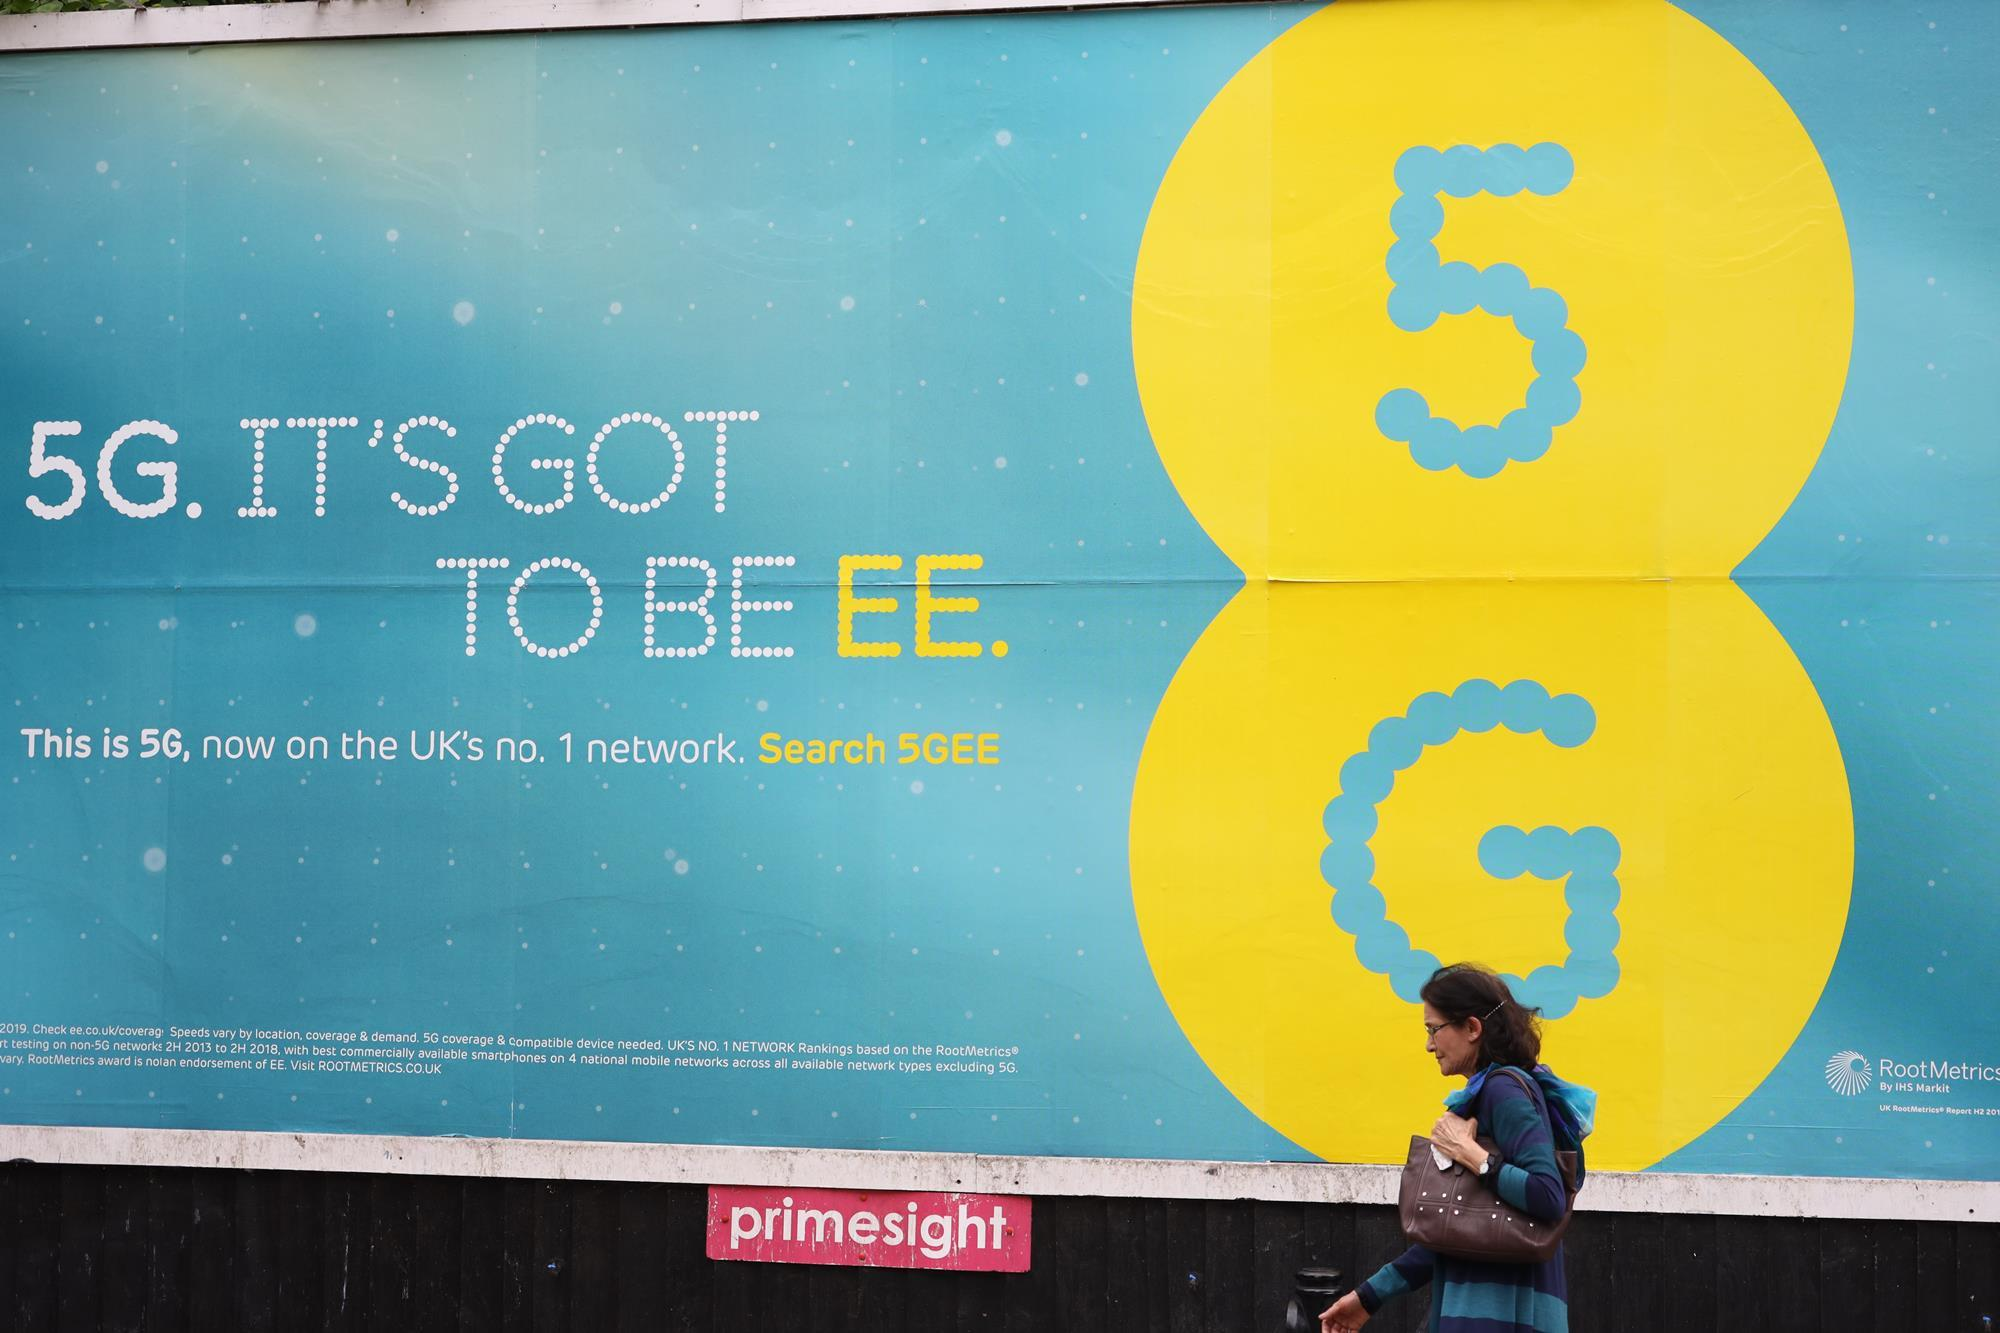 EE, Largest UK Mobile Services Company, Also Ranked #1 in Latest TotalSocial Ranking